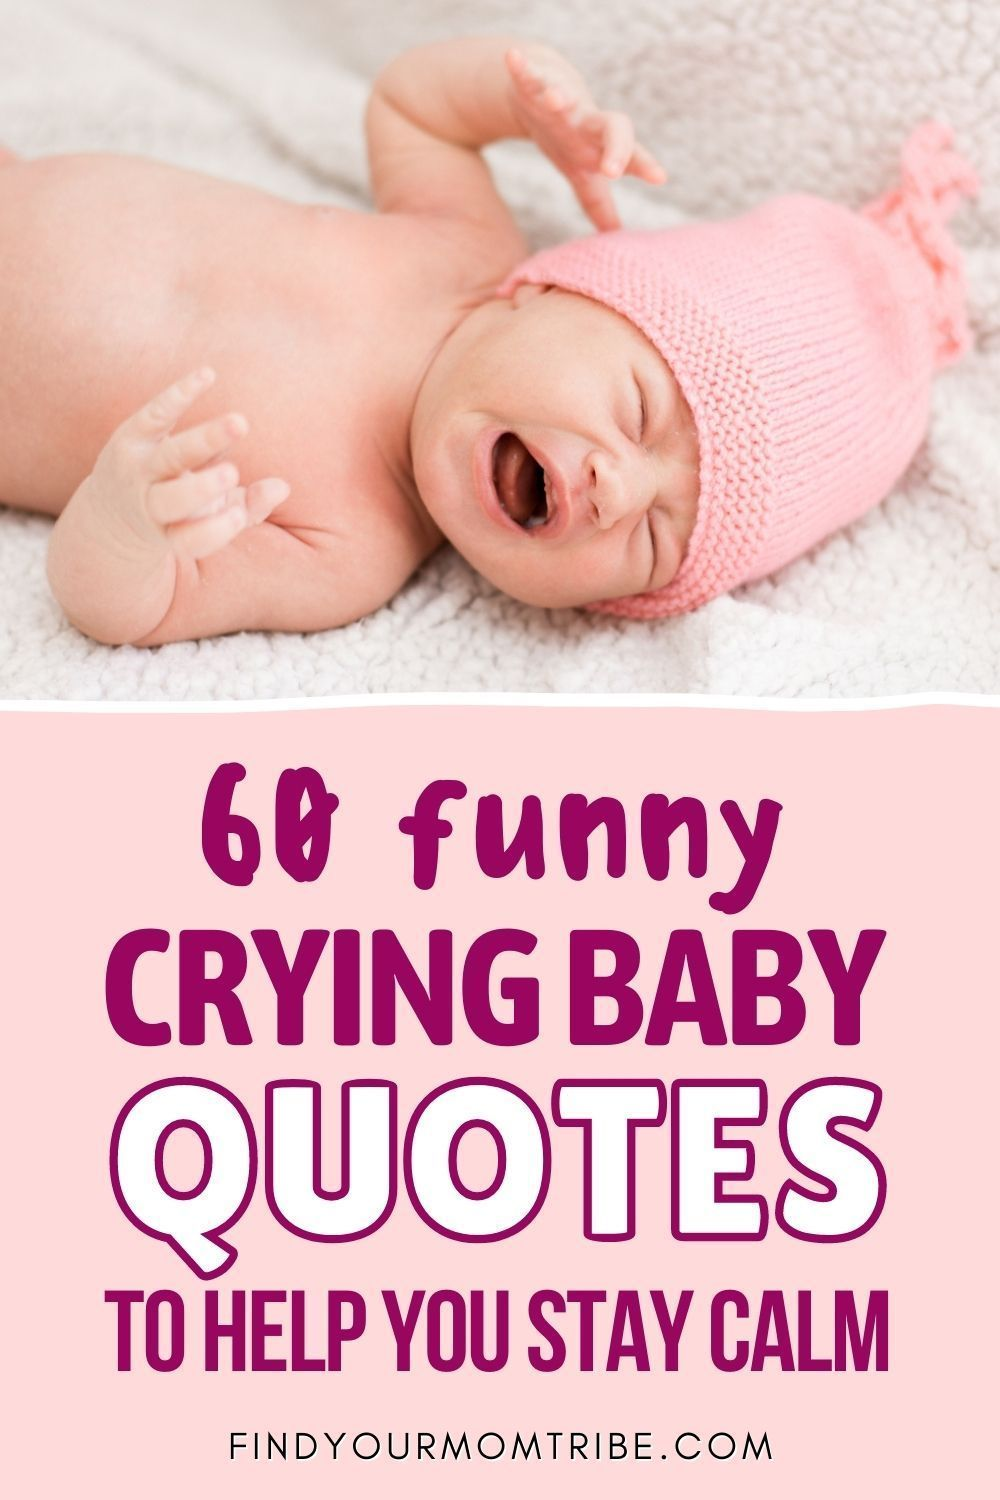 60 Funny Crying Baby Quotes To Help You Stay Calm Funny Crying Baby Baby Quotes Baby Crying